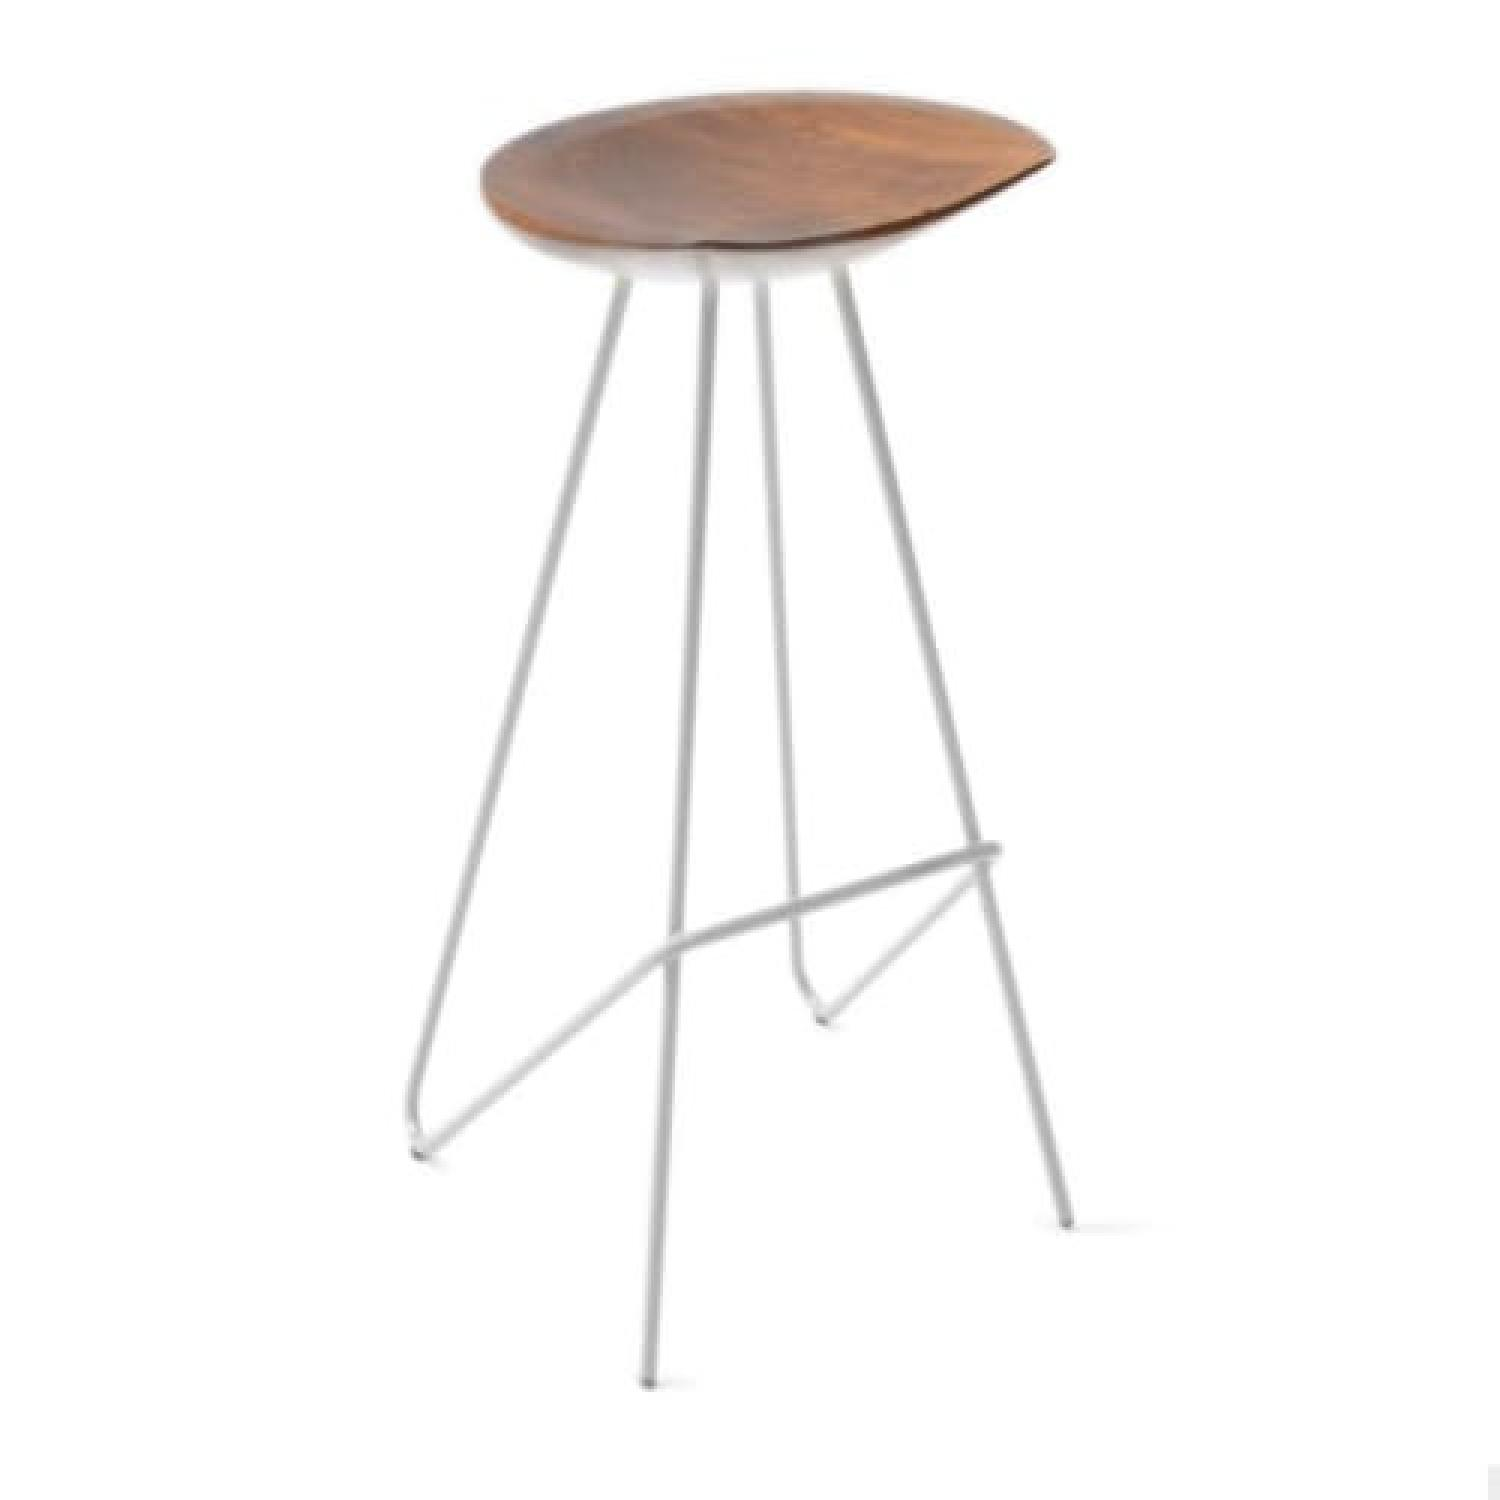 From The Source Perch Counter Stools - Set of 2 - image-16